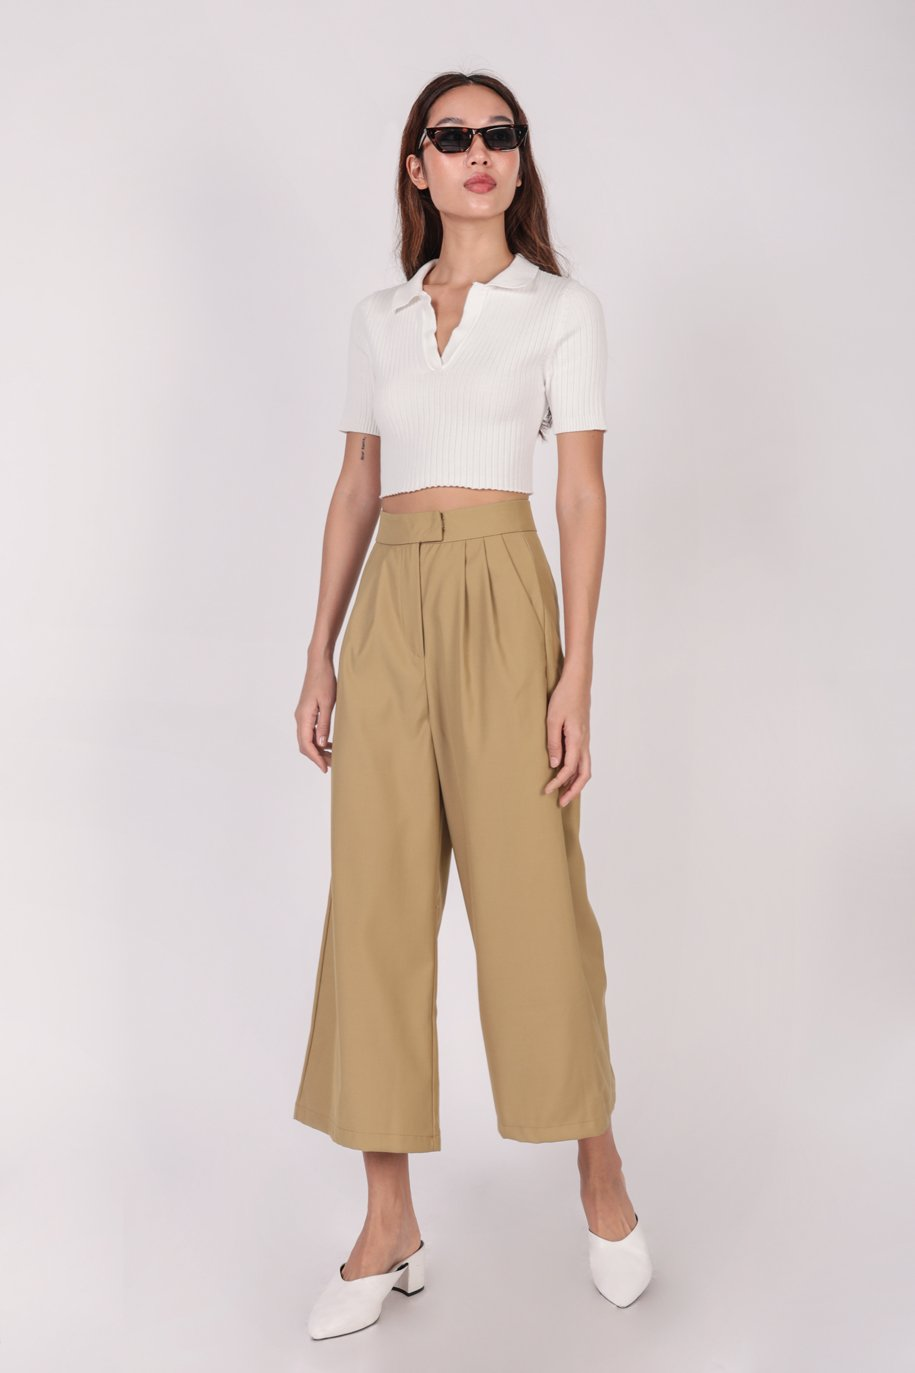 Clyde Collared Top (White)